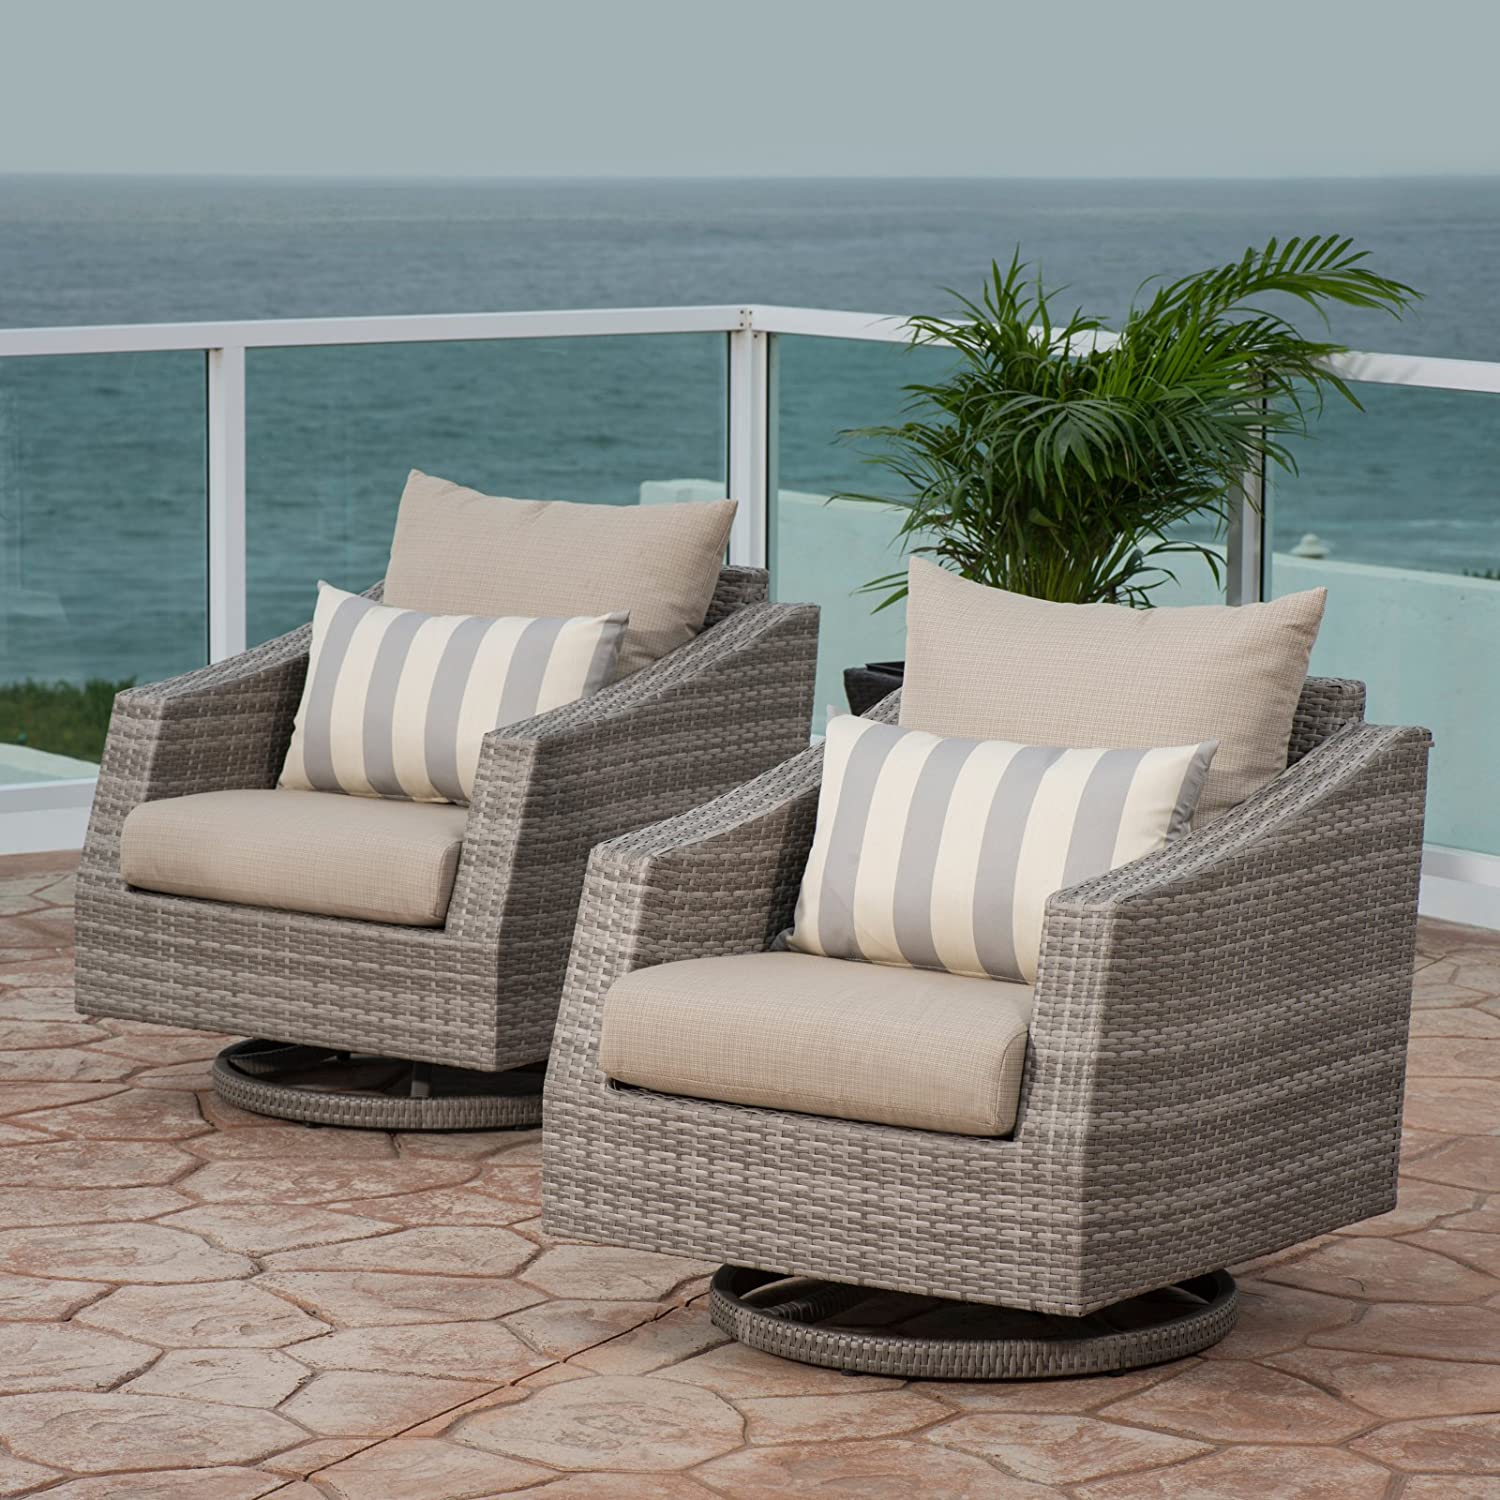 Amazon com rst cannes wicker motion patio club chairs set of 2 garden outdoor